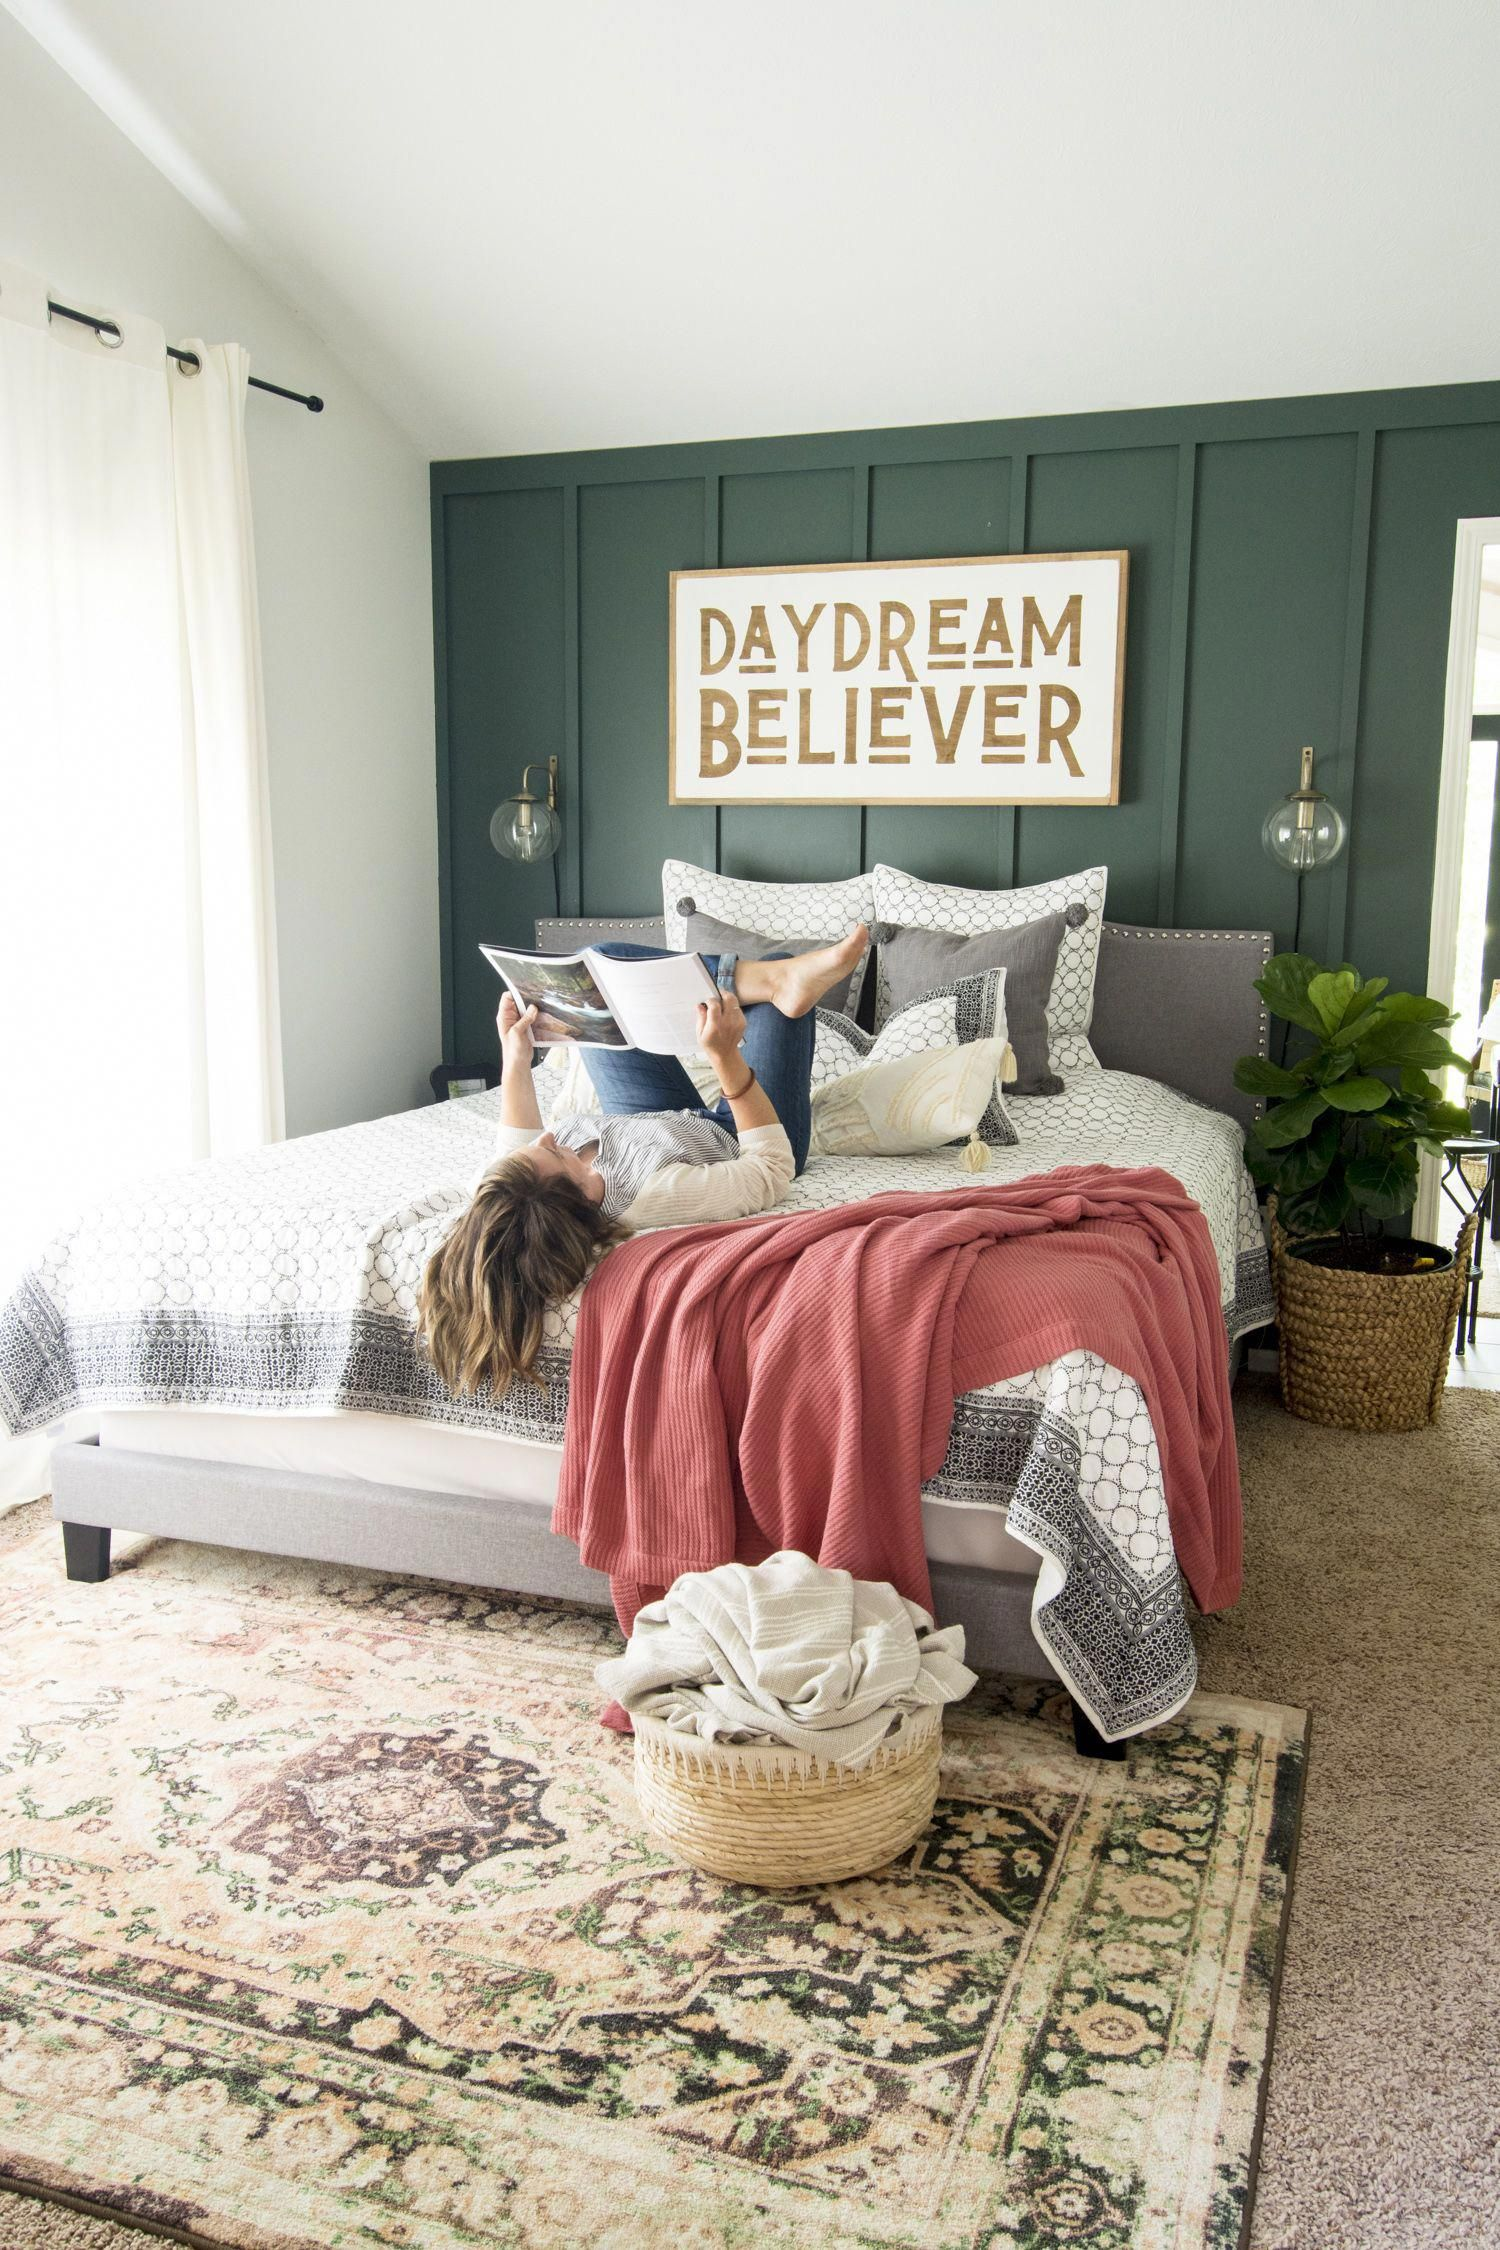 The modern farmhouse design style is a new classic. Here are 4 manageable and effortless ways to add touches of modern farmhouse fall decor in every room. #fromhousetohaven #falldecoratingideas #farmhousehomedecor #farmhousefalldecor #farmhousemasterbedroom